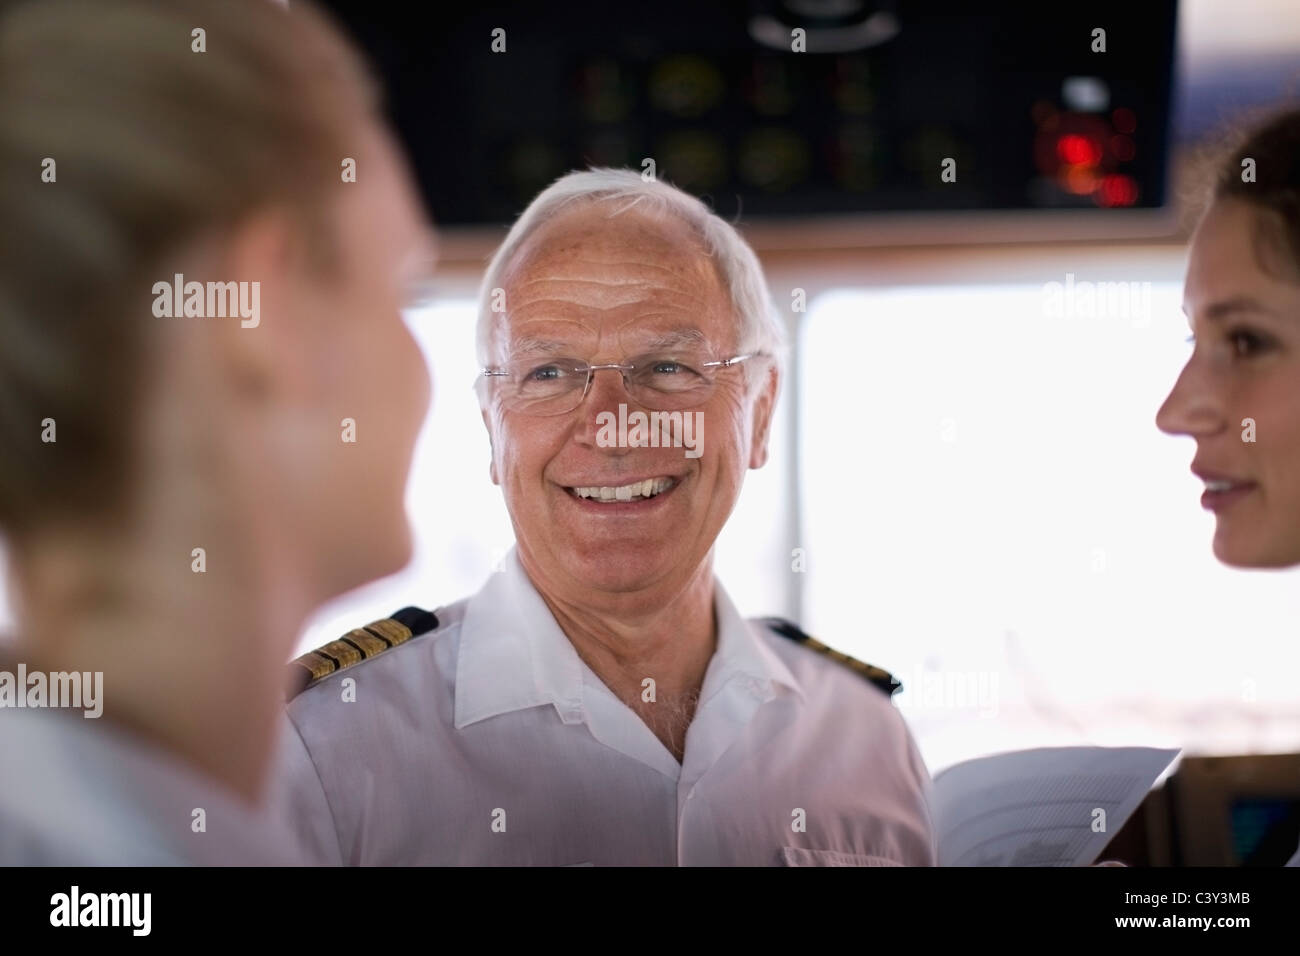 Captain talking to mates - Stock Image